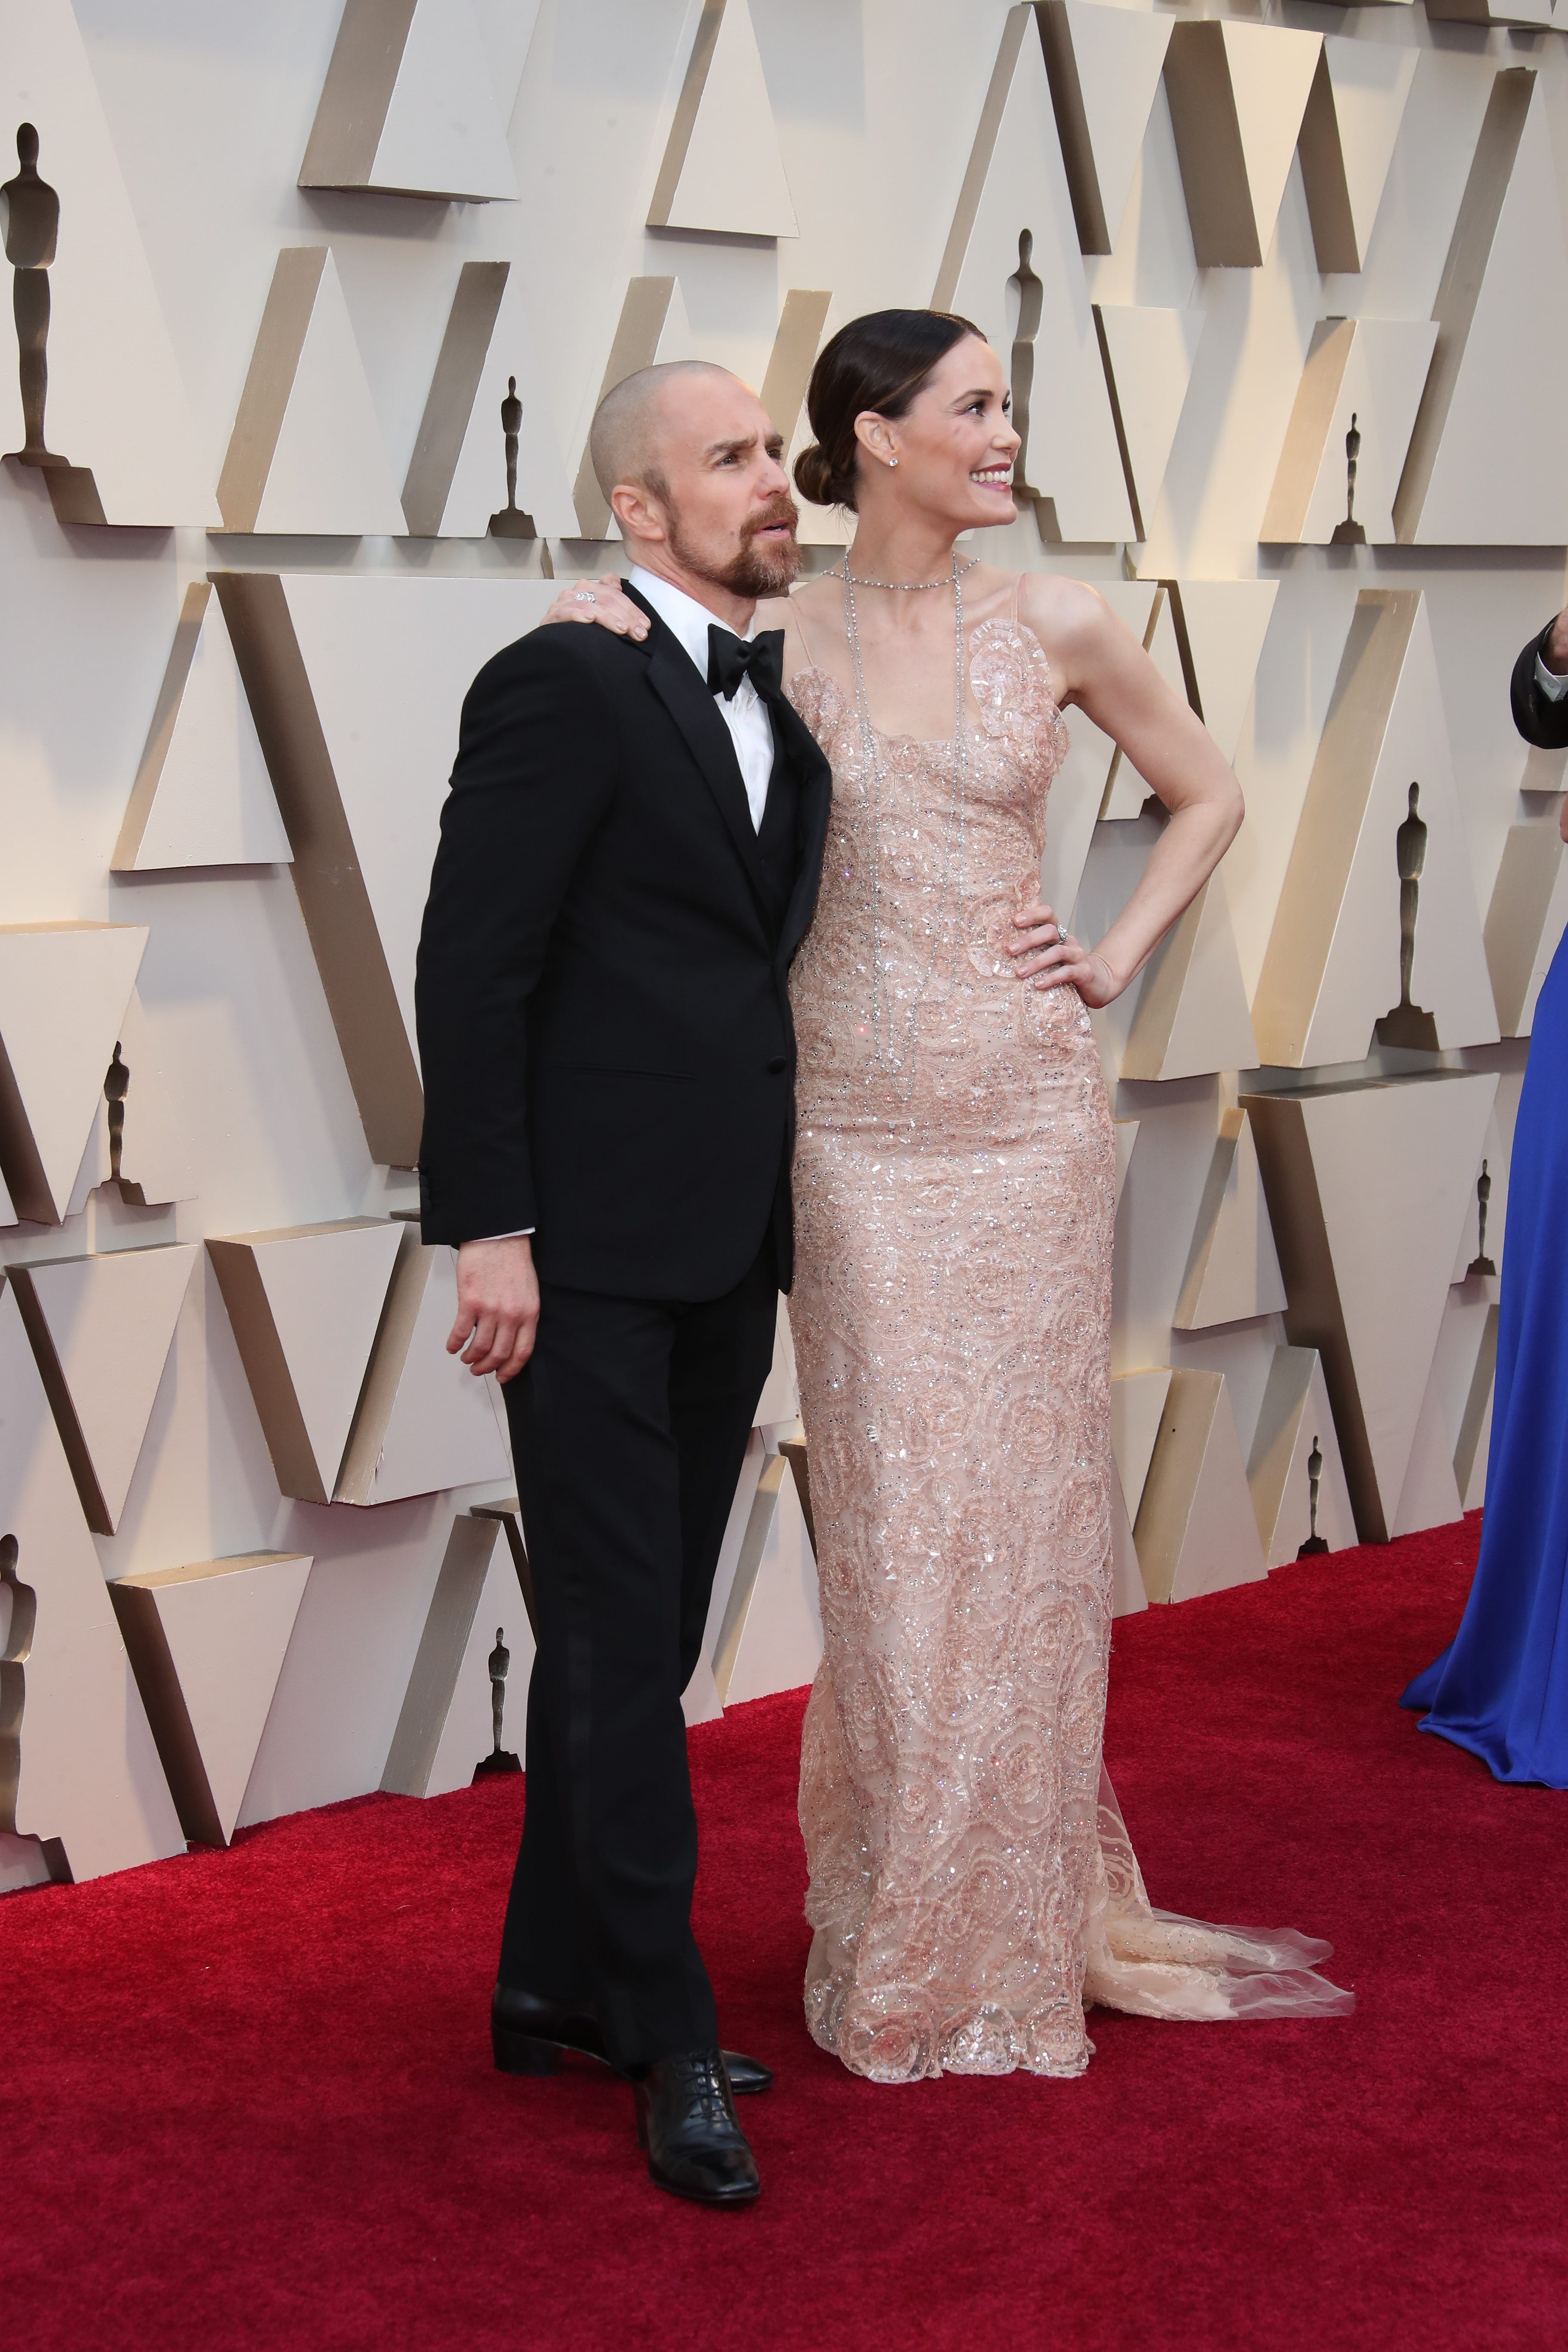 February 24, 2019; Los Angeles, CA, USA; Sam Rockwell, left and Leslie Bibb arrive at the 91st Academy Awards at the Dolby Theatre. Mandatory Credit: Dan MacMedan-USA TODAY NETWORK (Via OlyDrop)